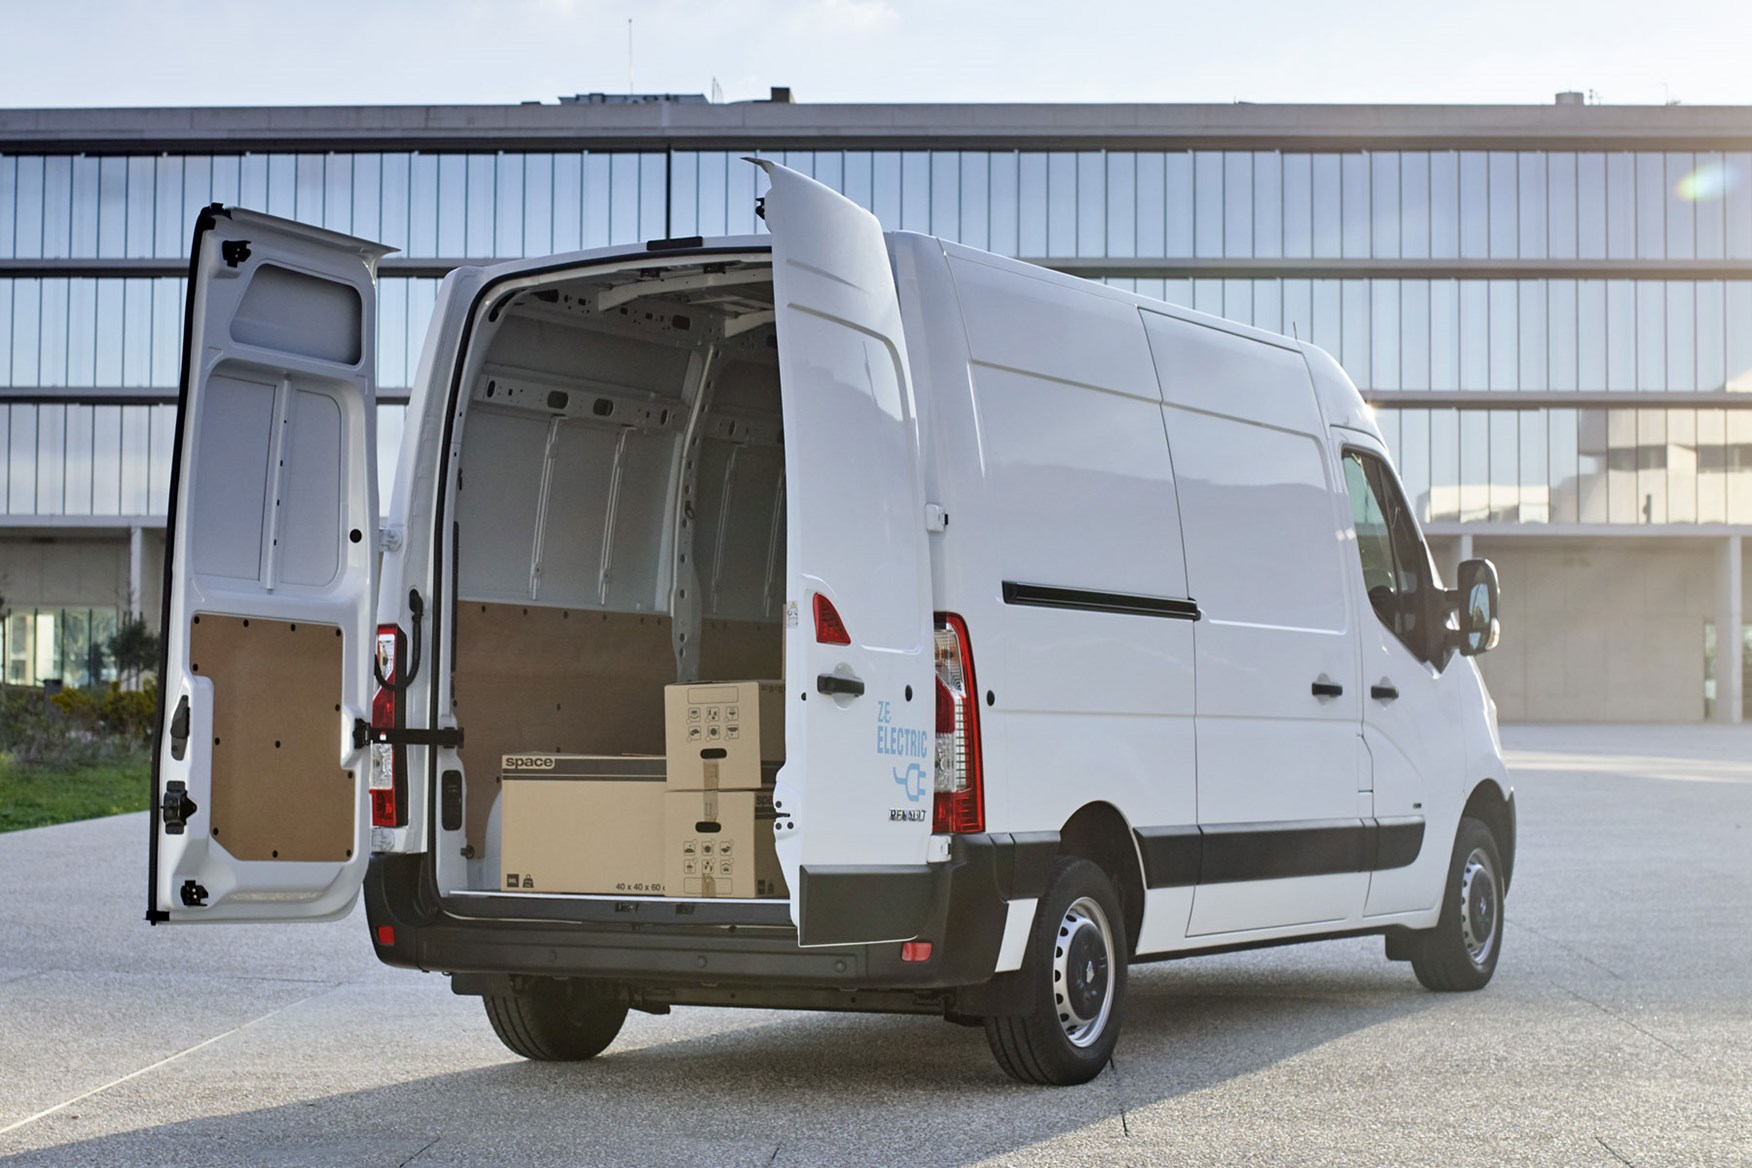 Renault Master ZE electric van review, 2020 - rear view, load area with boxes